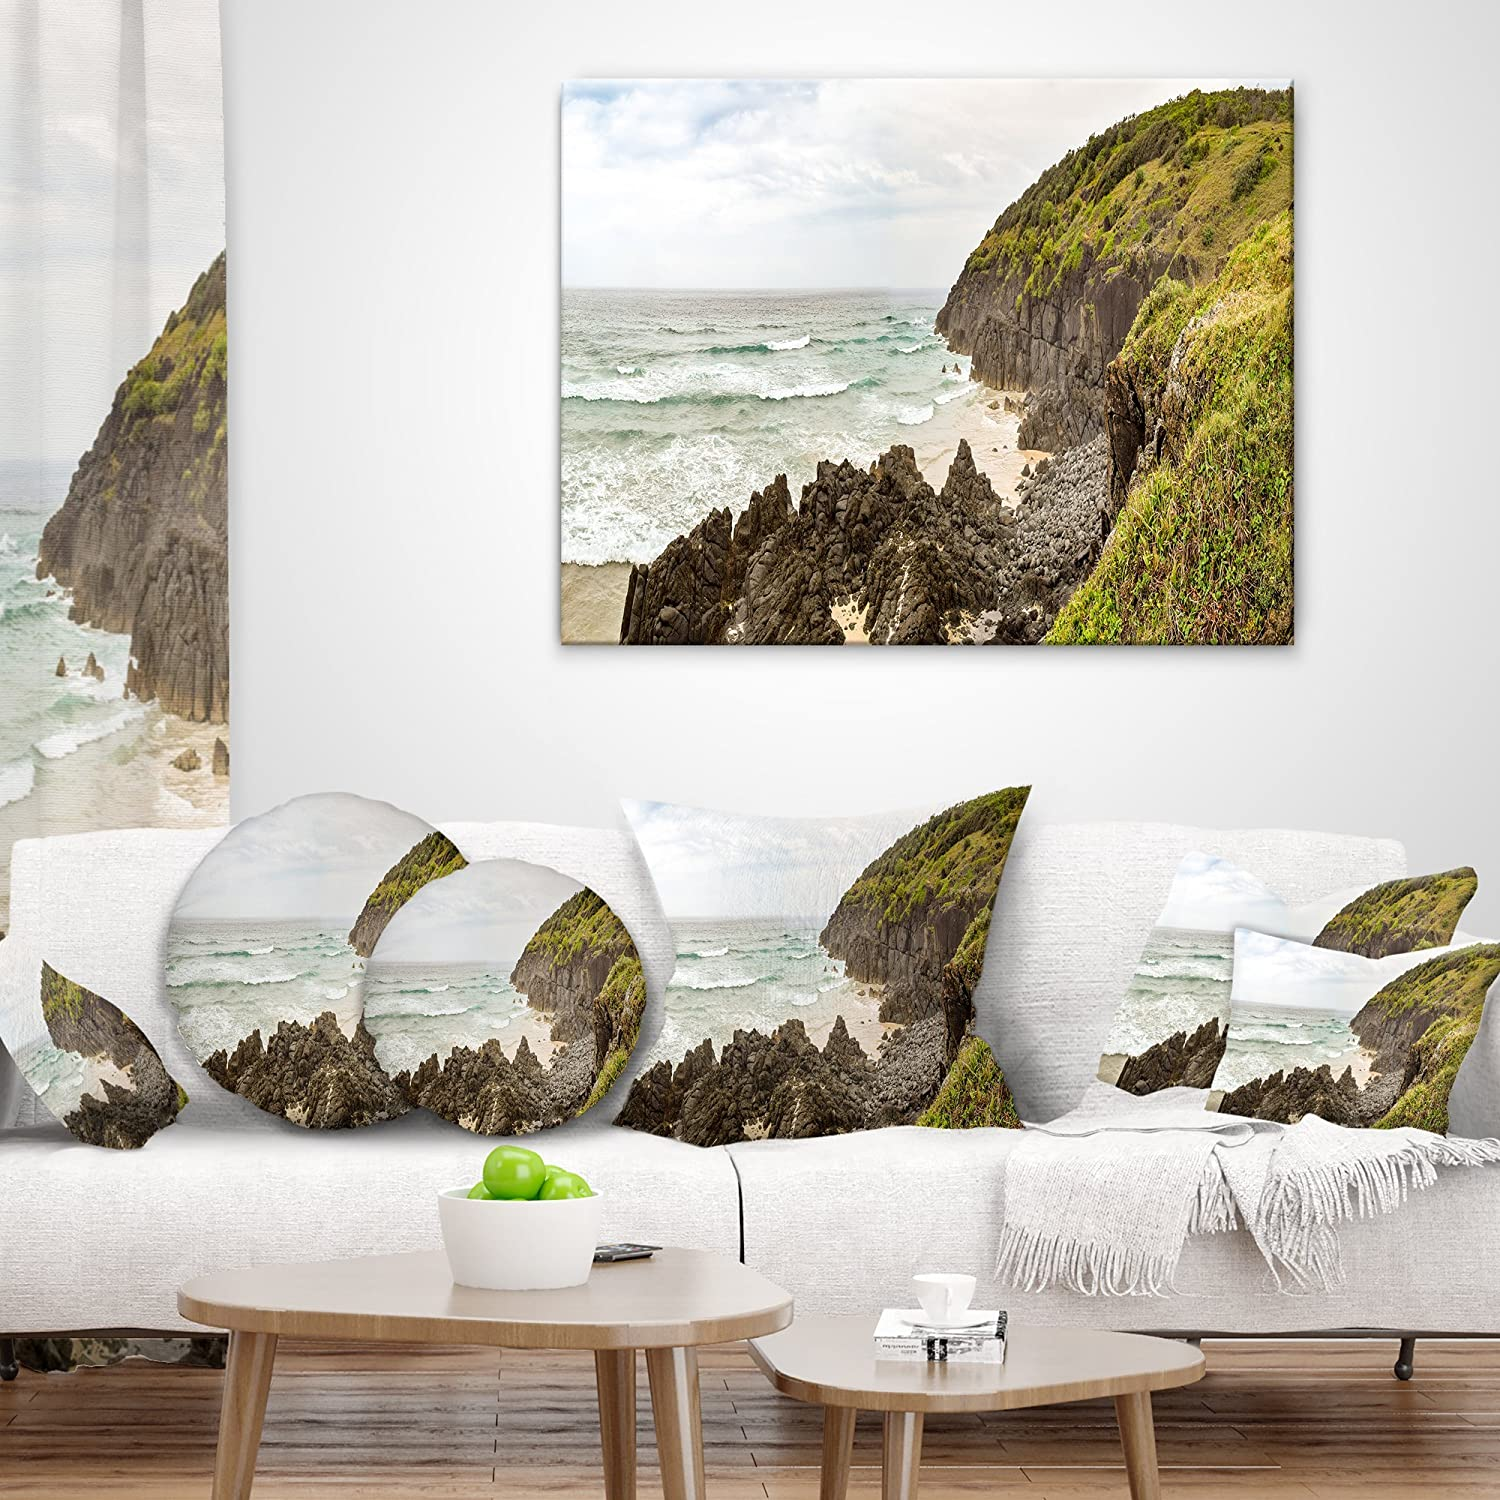 Designart CU11740-16-16 Crescent Head Coastline in Australia Landscape Printed Cushion Cover for Living Room Sofa Throw Pillow x 16 in,